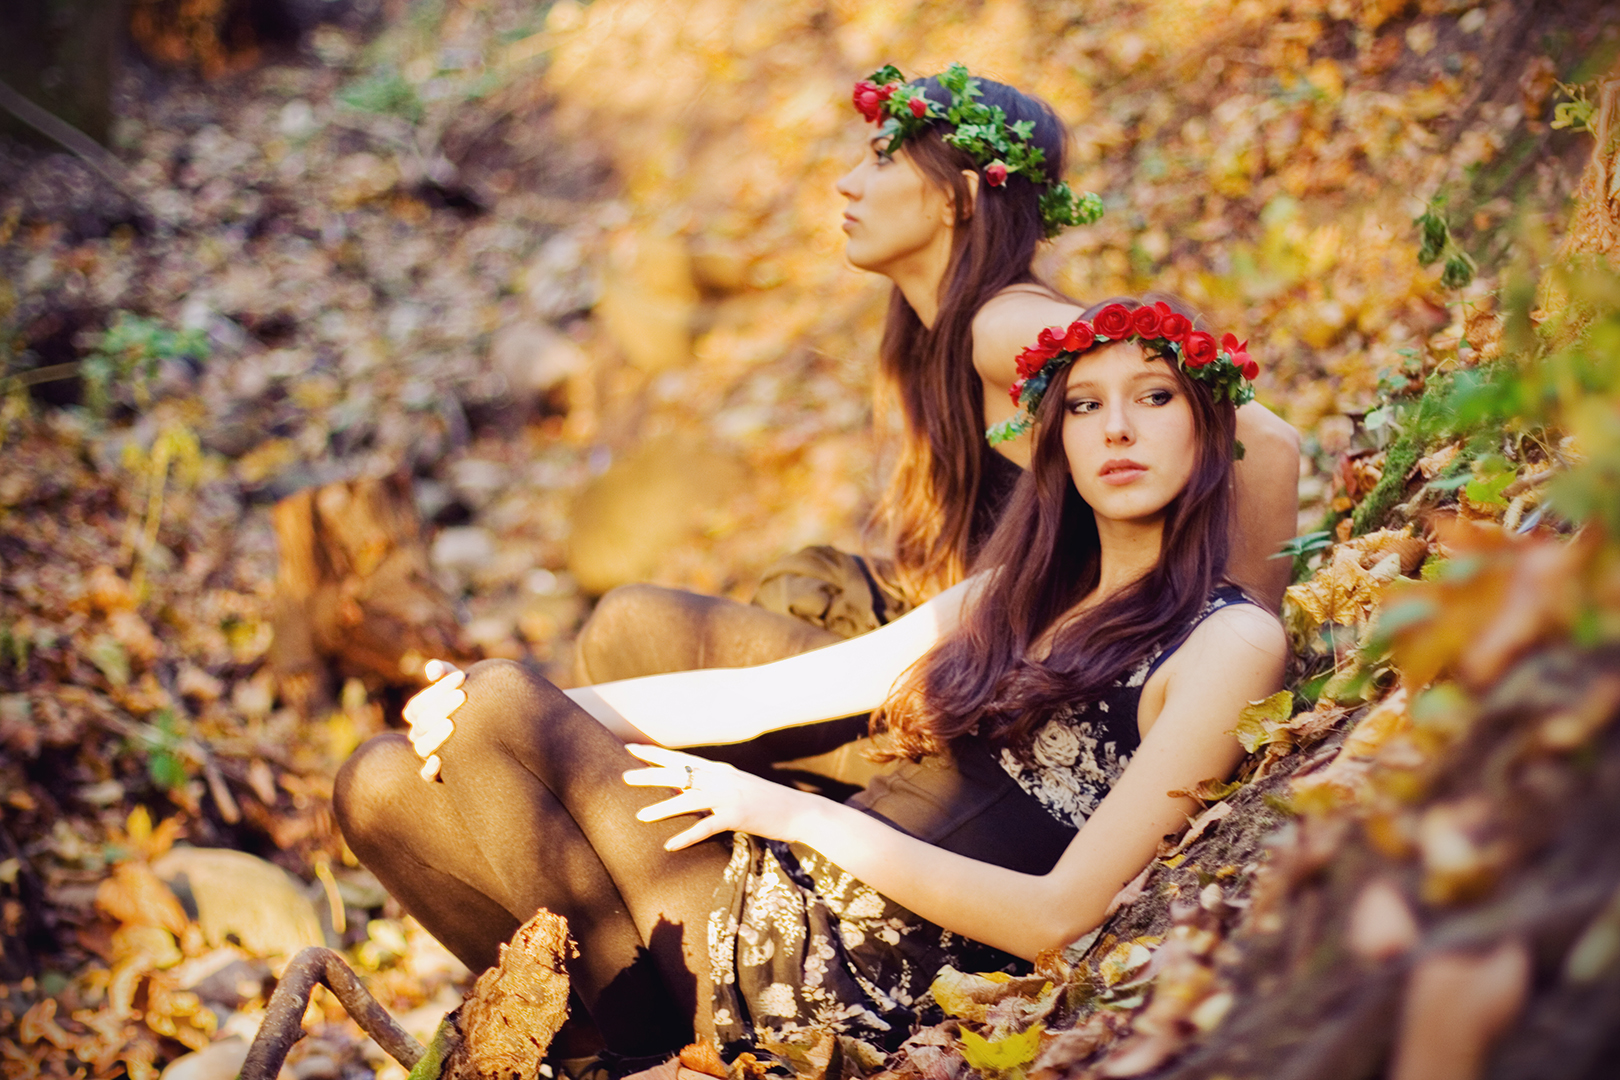 girls in flower crowns in a forest by Ailera Stone